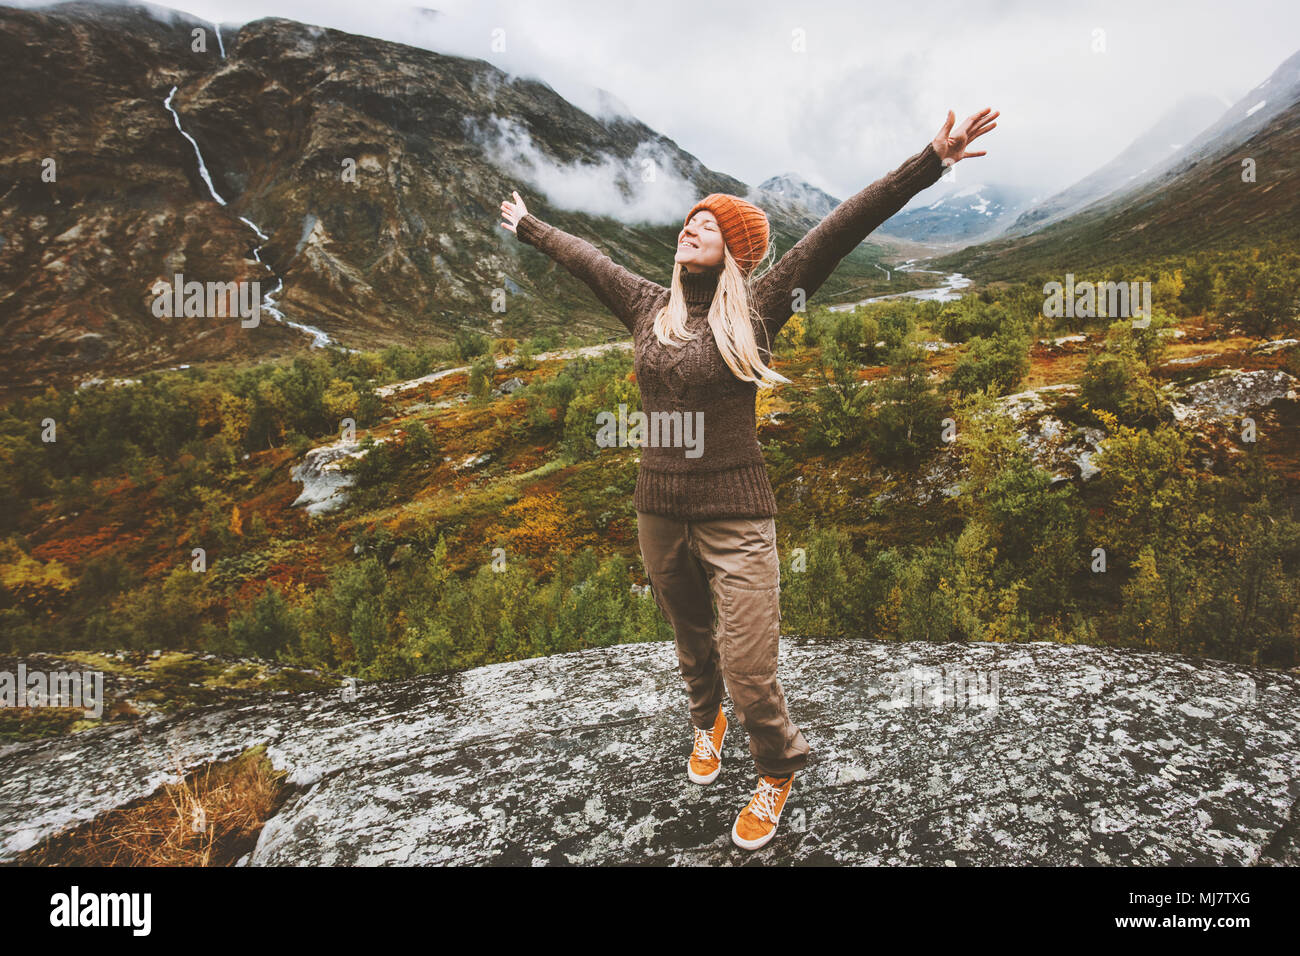 Happy woman traveler raised hands walking in forest mountains Travel adventure healthy lifestyle concept vacations - Stock Image